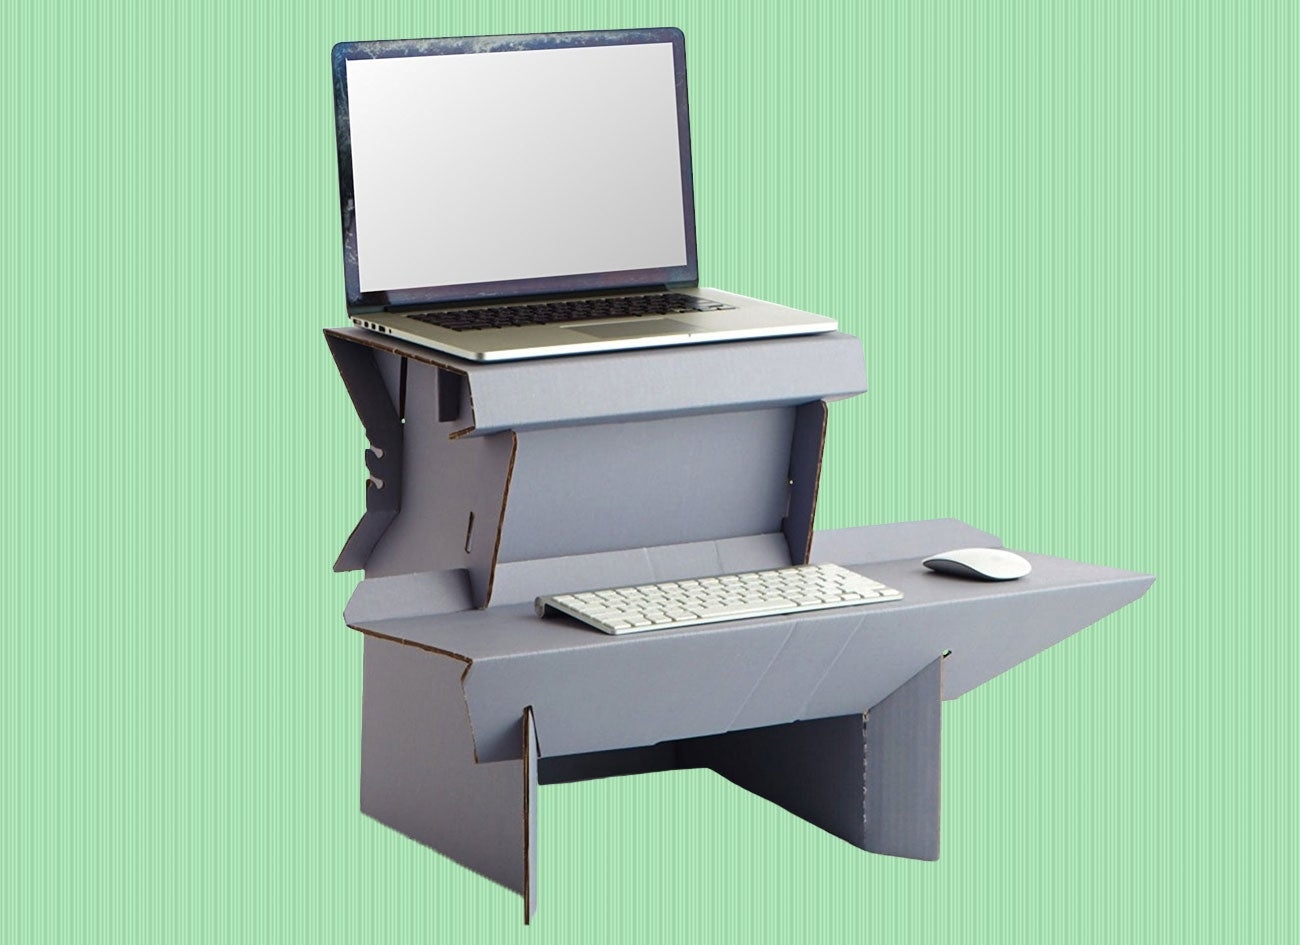 Peachy Tired Of Sitting At Work Try These 5 Top Rated Standing Desks Gmtry Best Dining Table And Chair Ideas Images Gmtryco